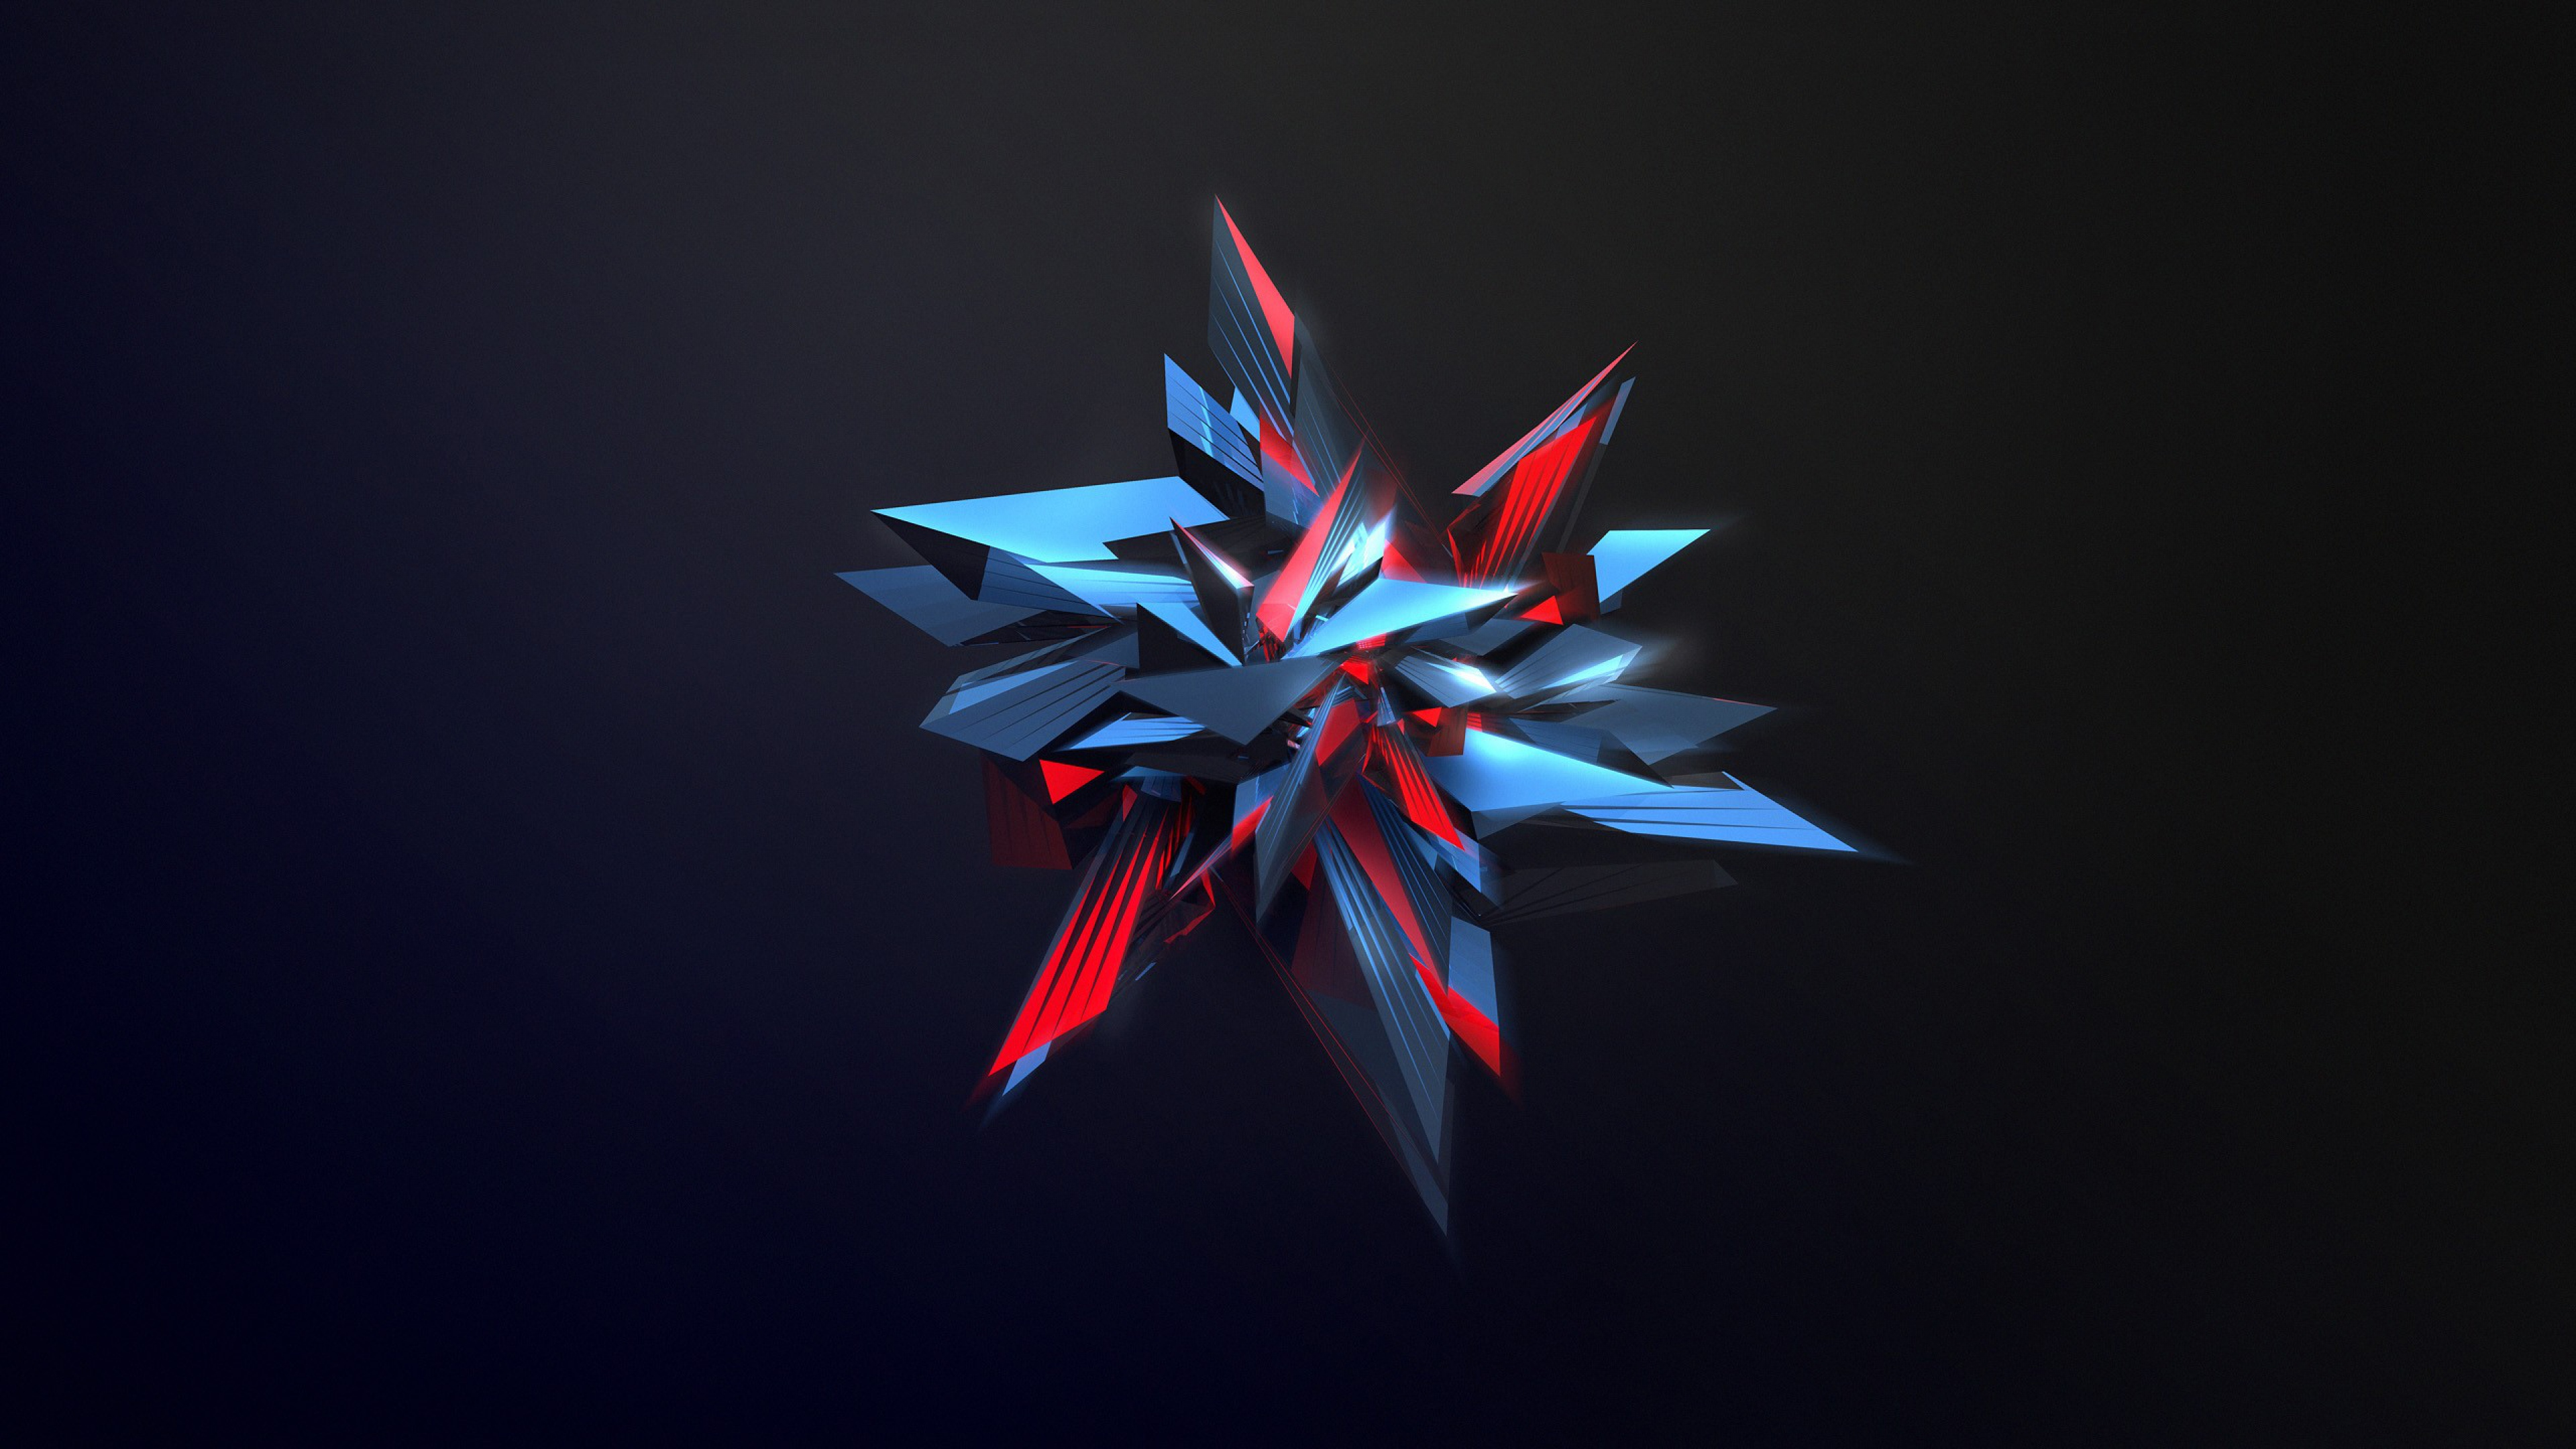 abstract shapes justin maller 4k 1539370761 - Abstract Shapes Justin Maller 4k - justin maller wallpapers, hd-wallpapers, digital art wallpapers, artist wallpapers, 4k-wallpapers